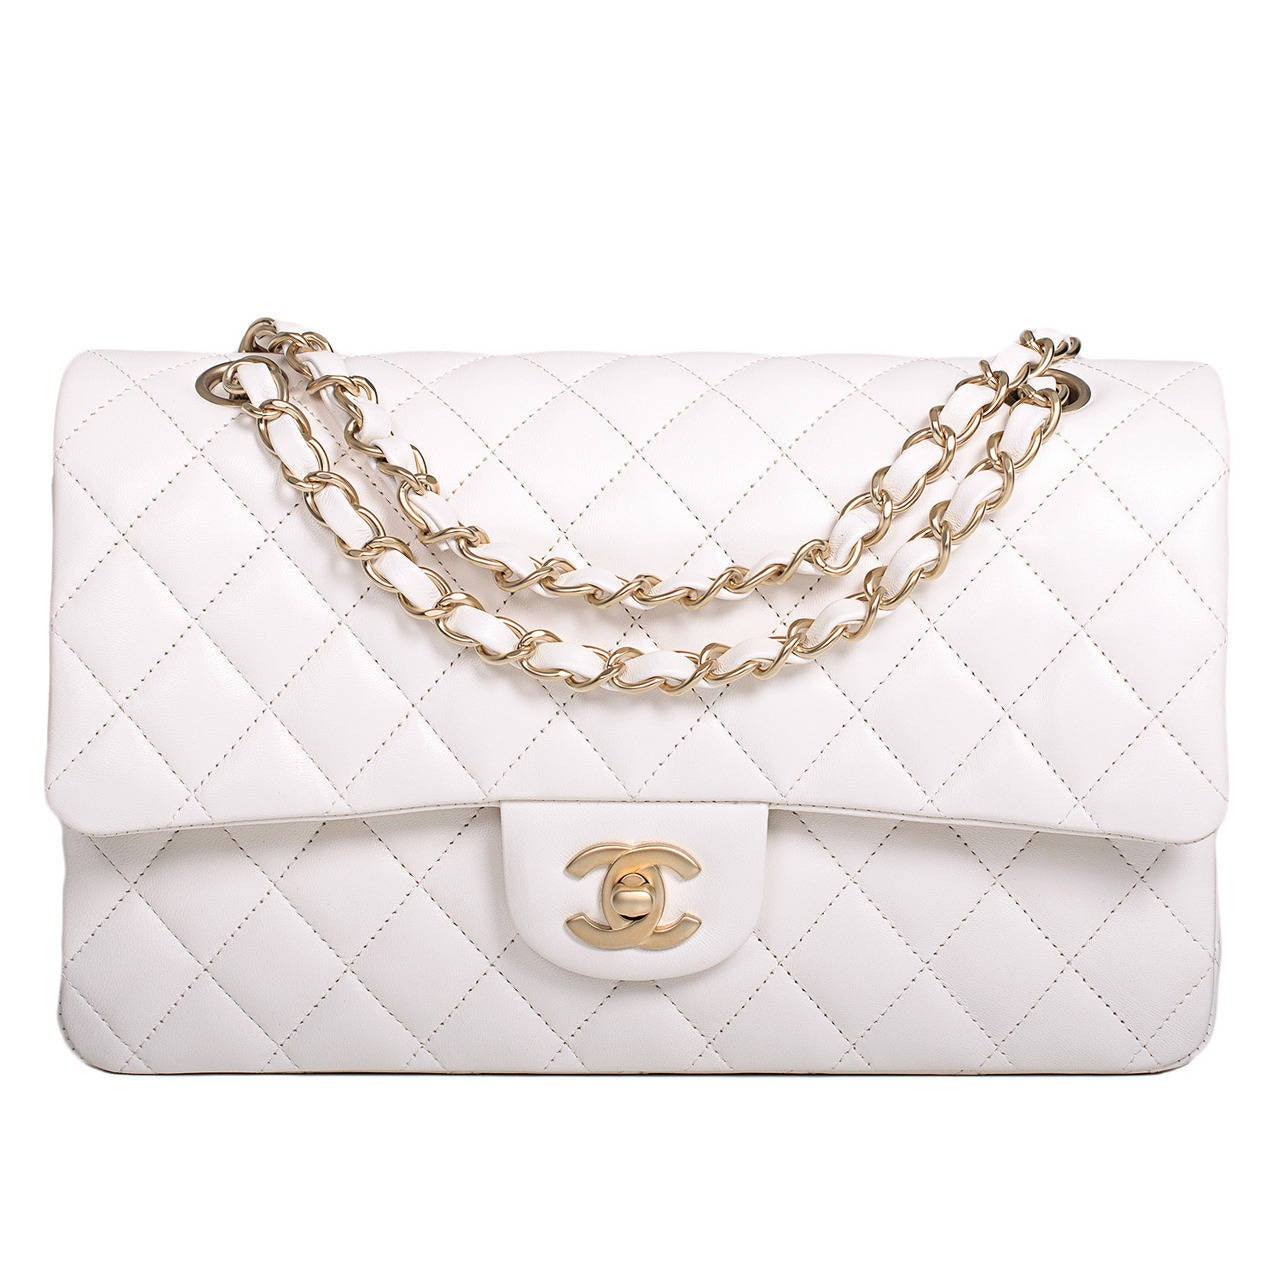 Chanel White Quilted Lambskin Large Classic Double Flap